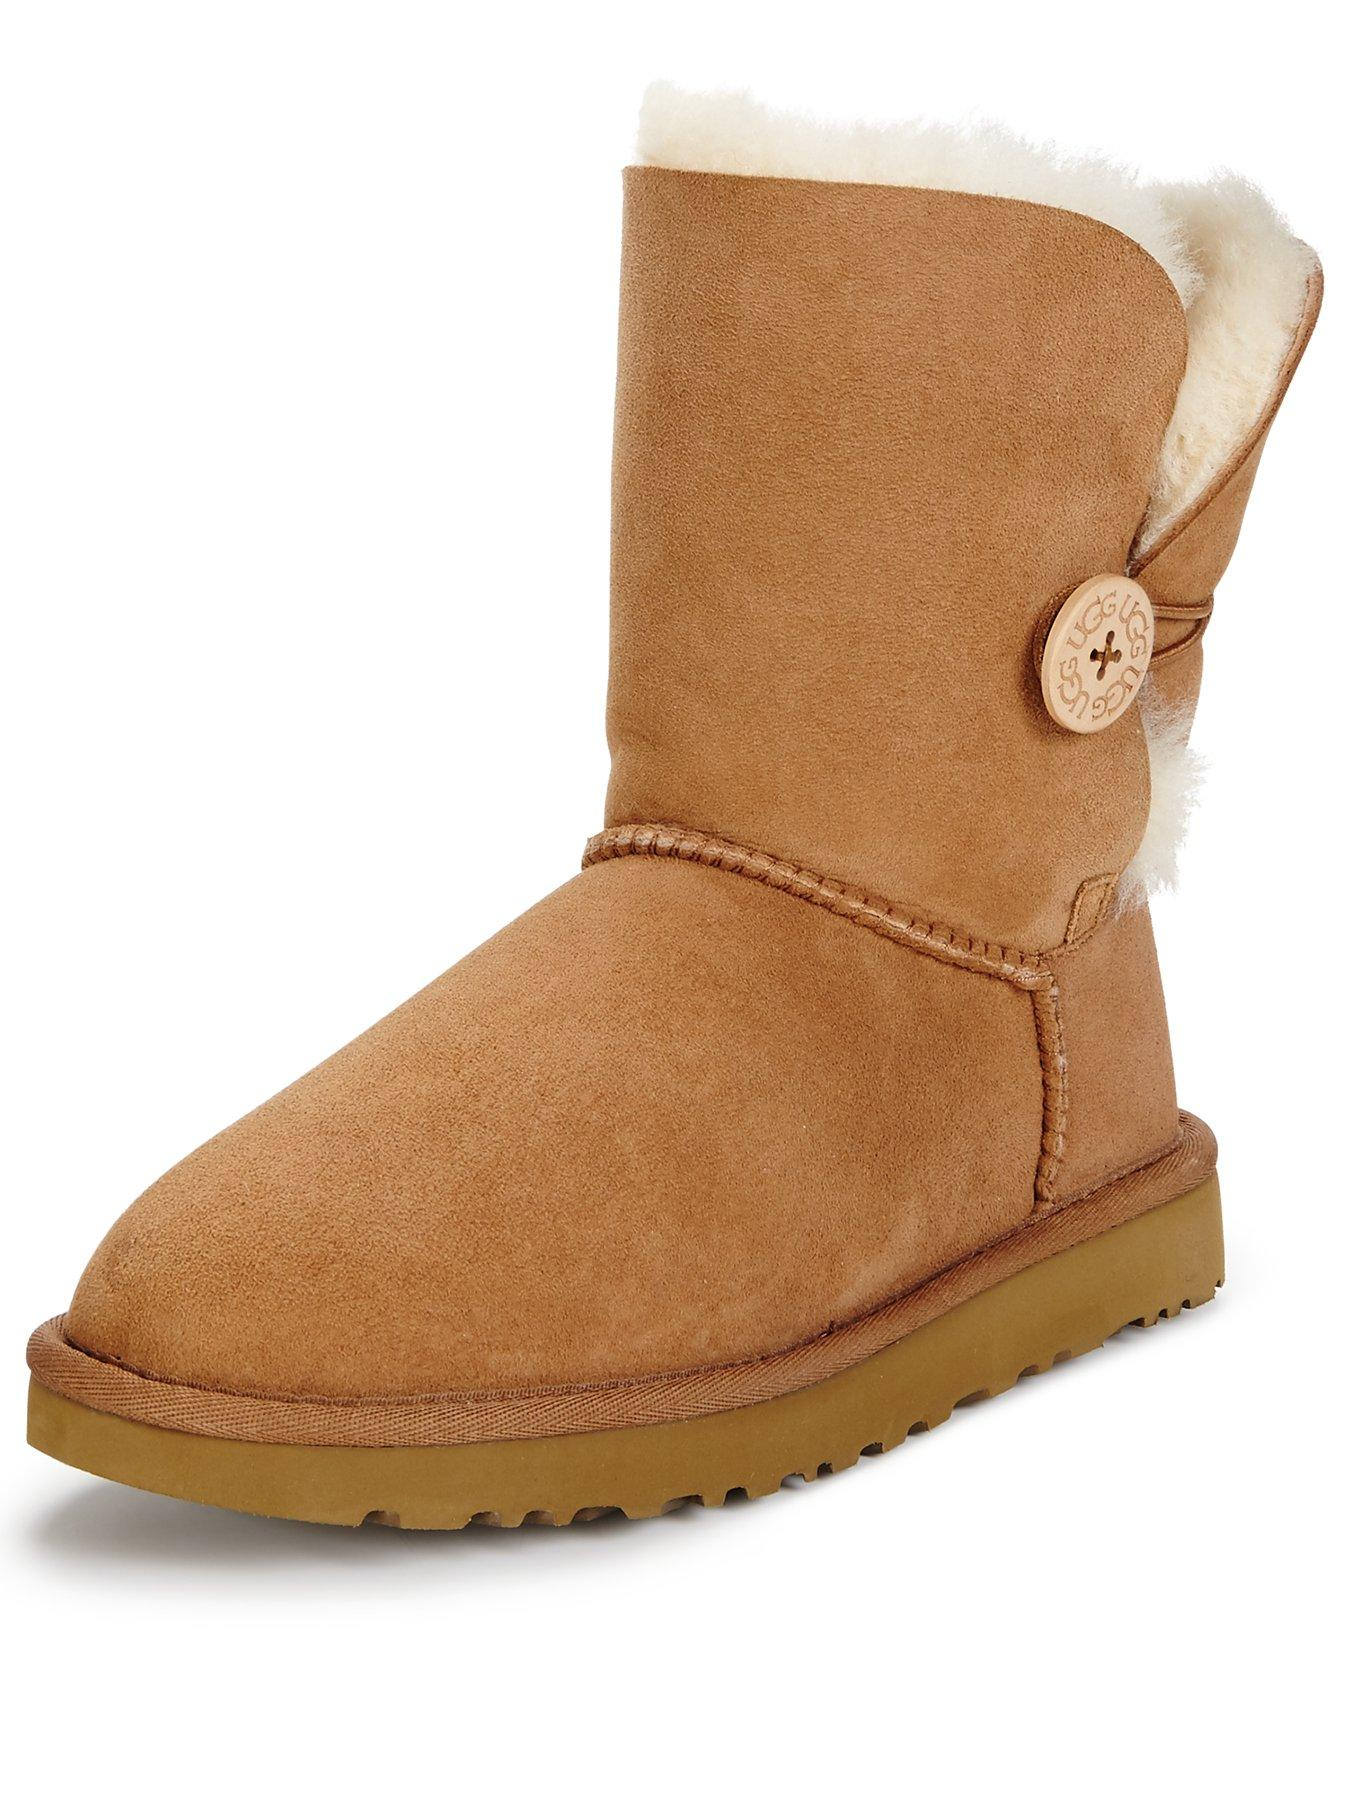 ugg australia boots cheap uk